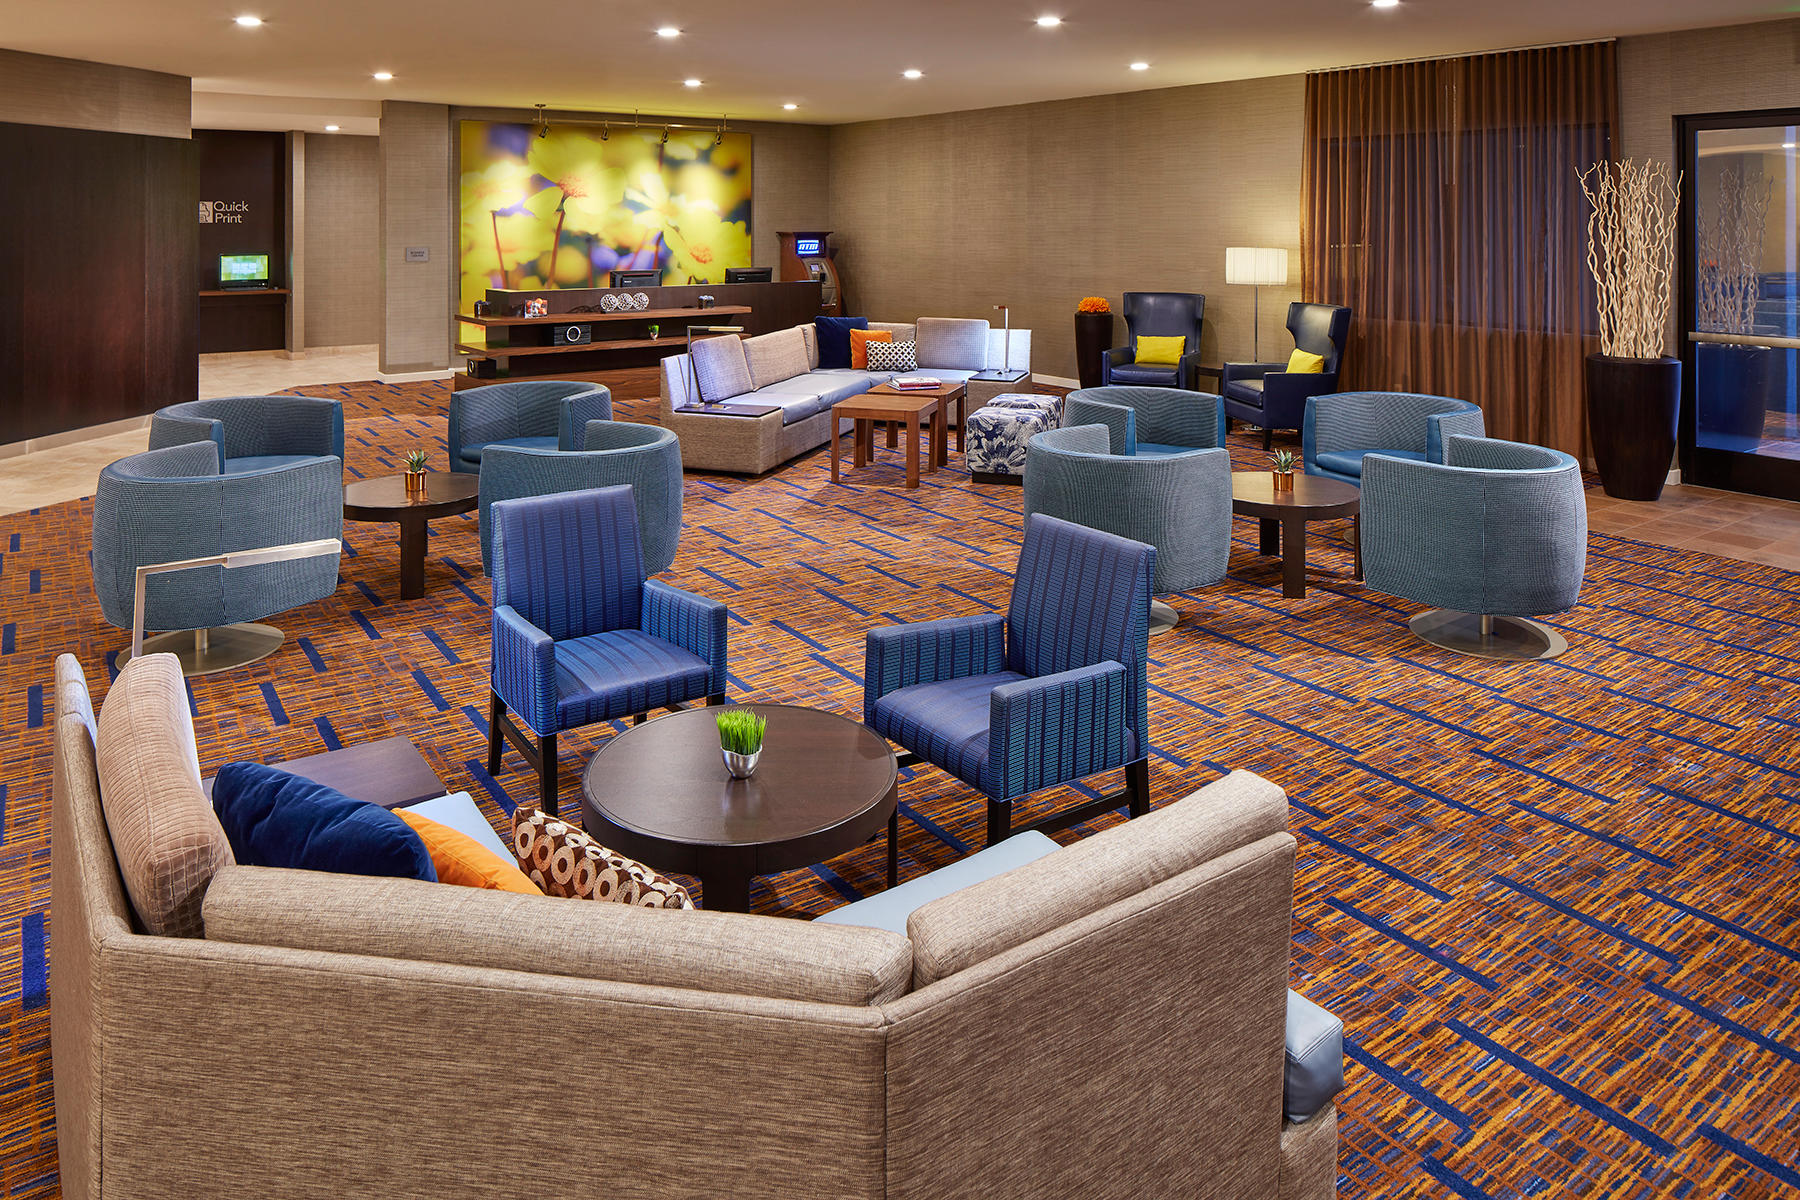 Courtyard by Marriott Vallejo Napa Valley image 5